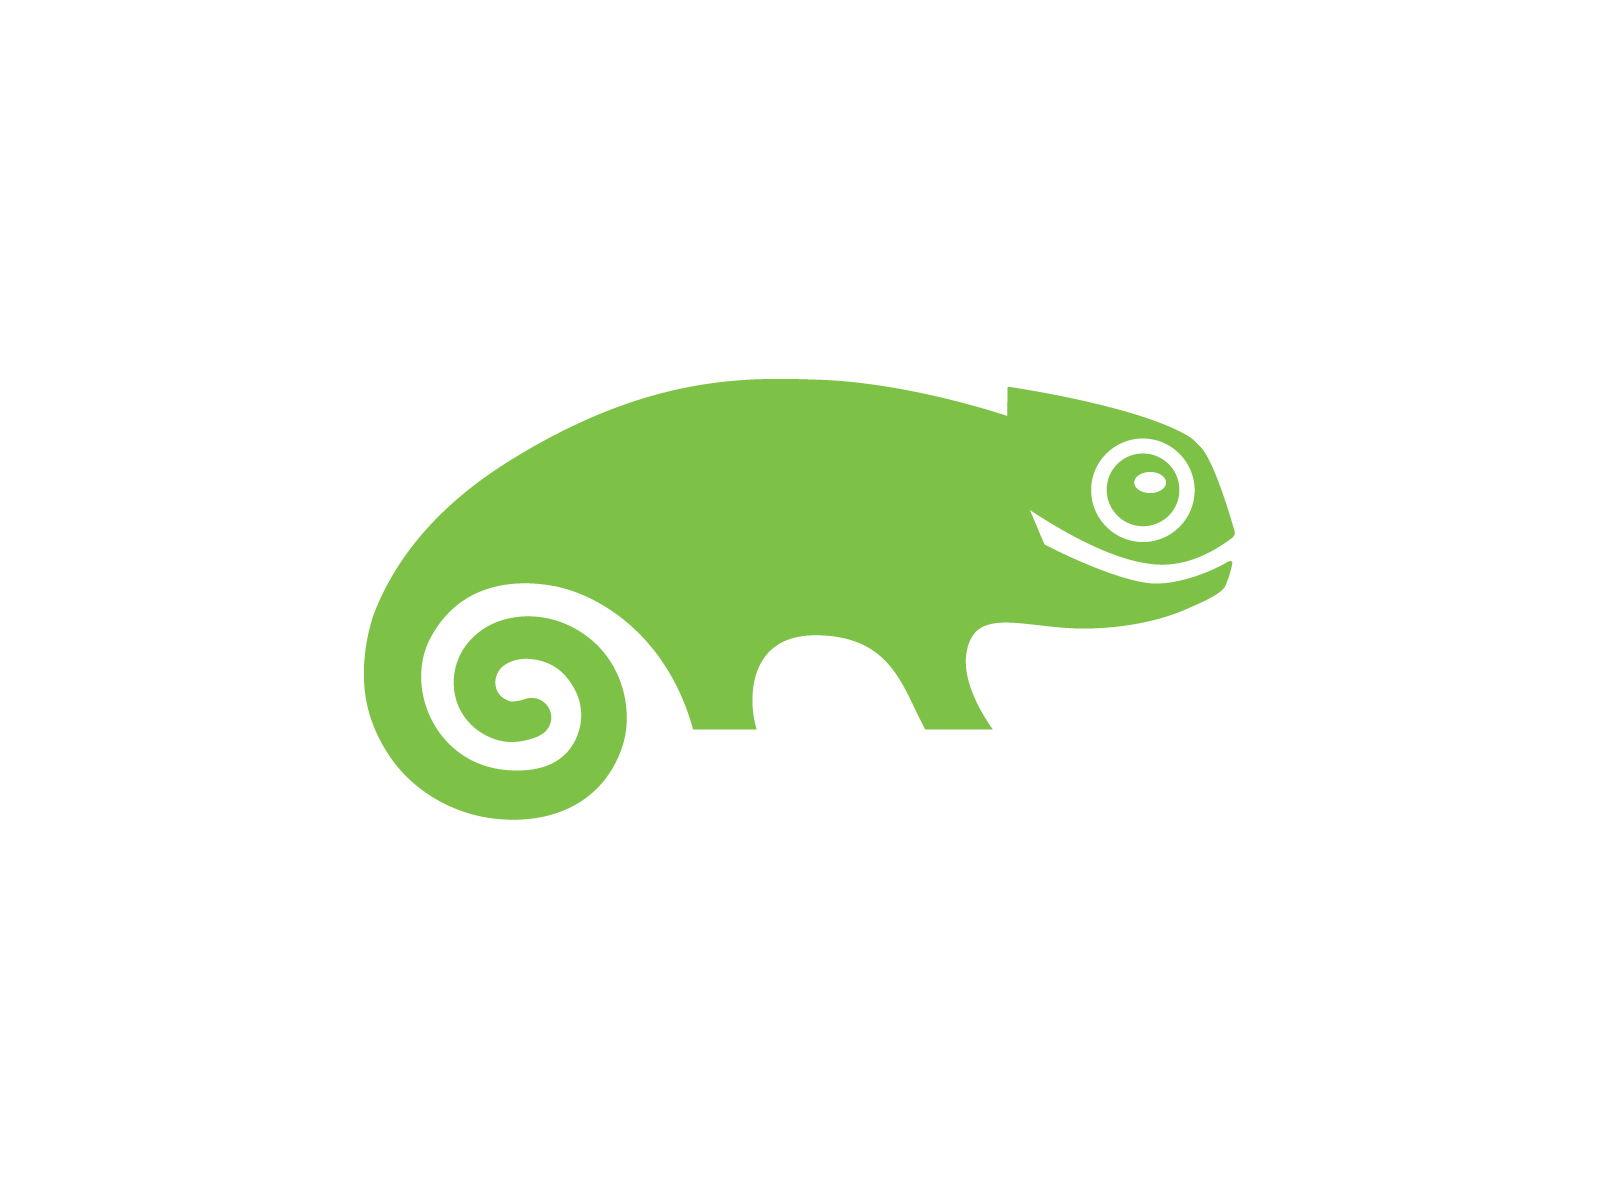 Suse Hat Enterprise Opensuse Lizard Linux Distributions PNG Image